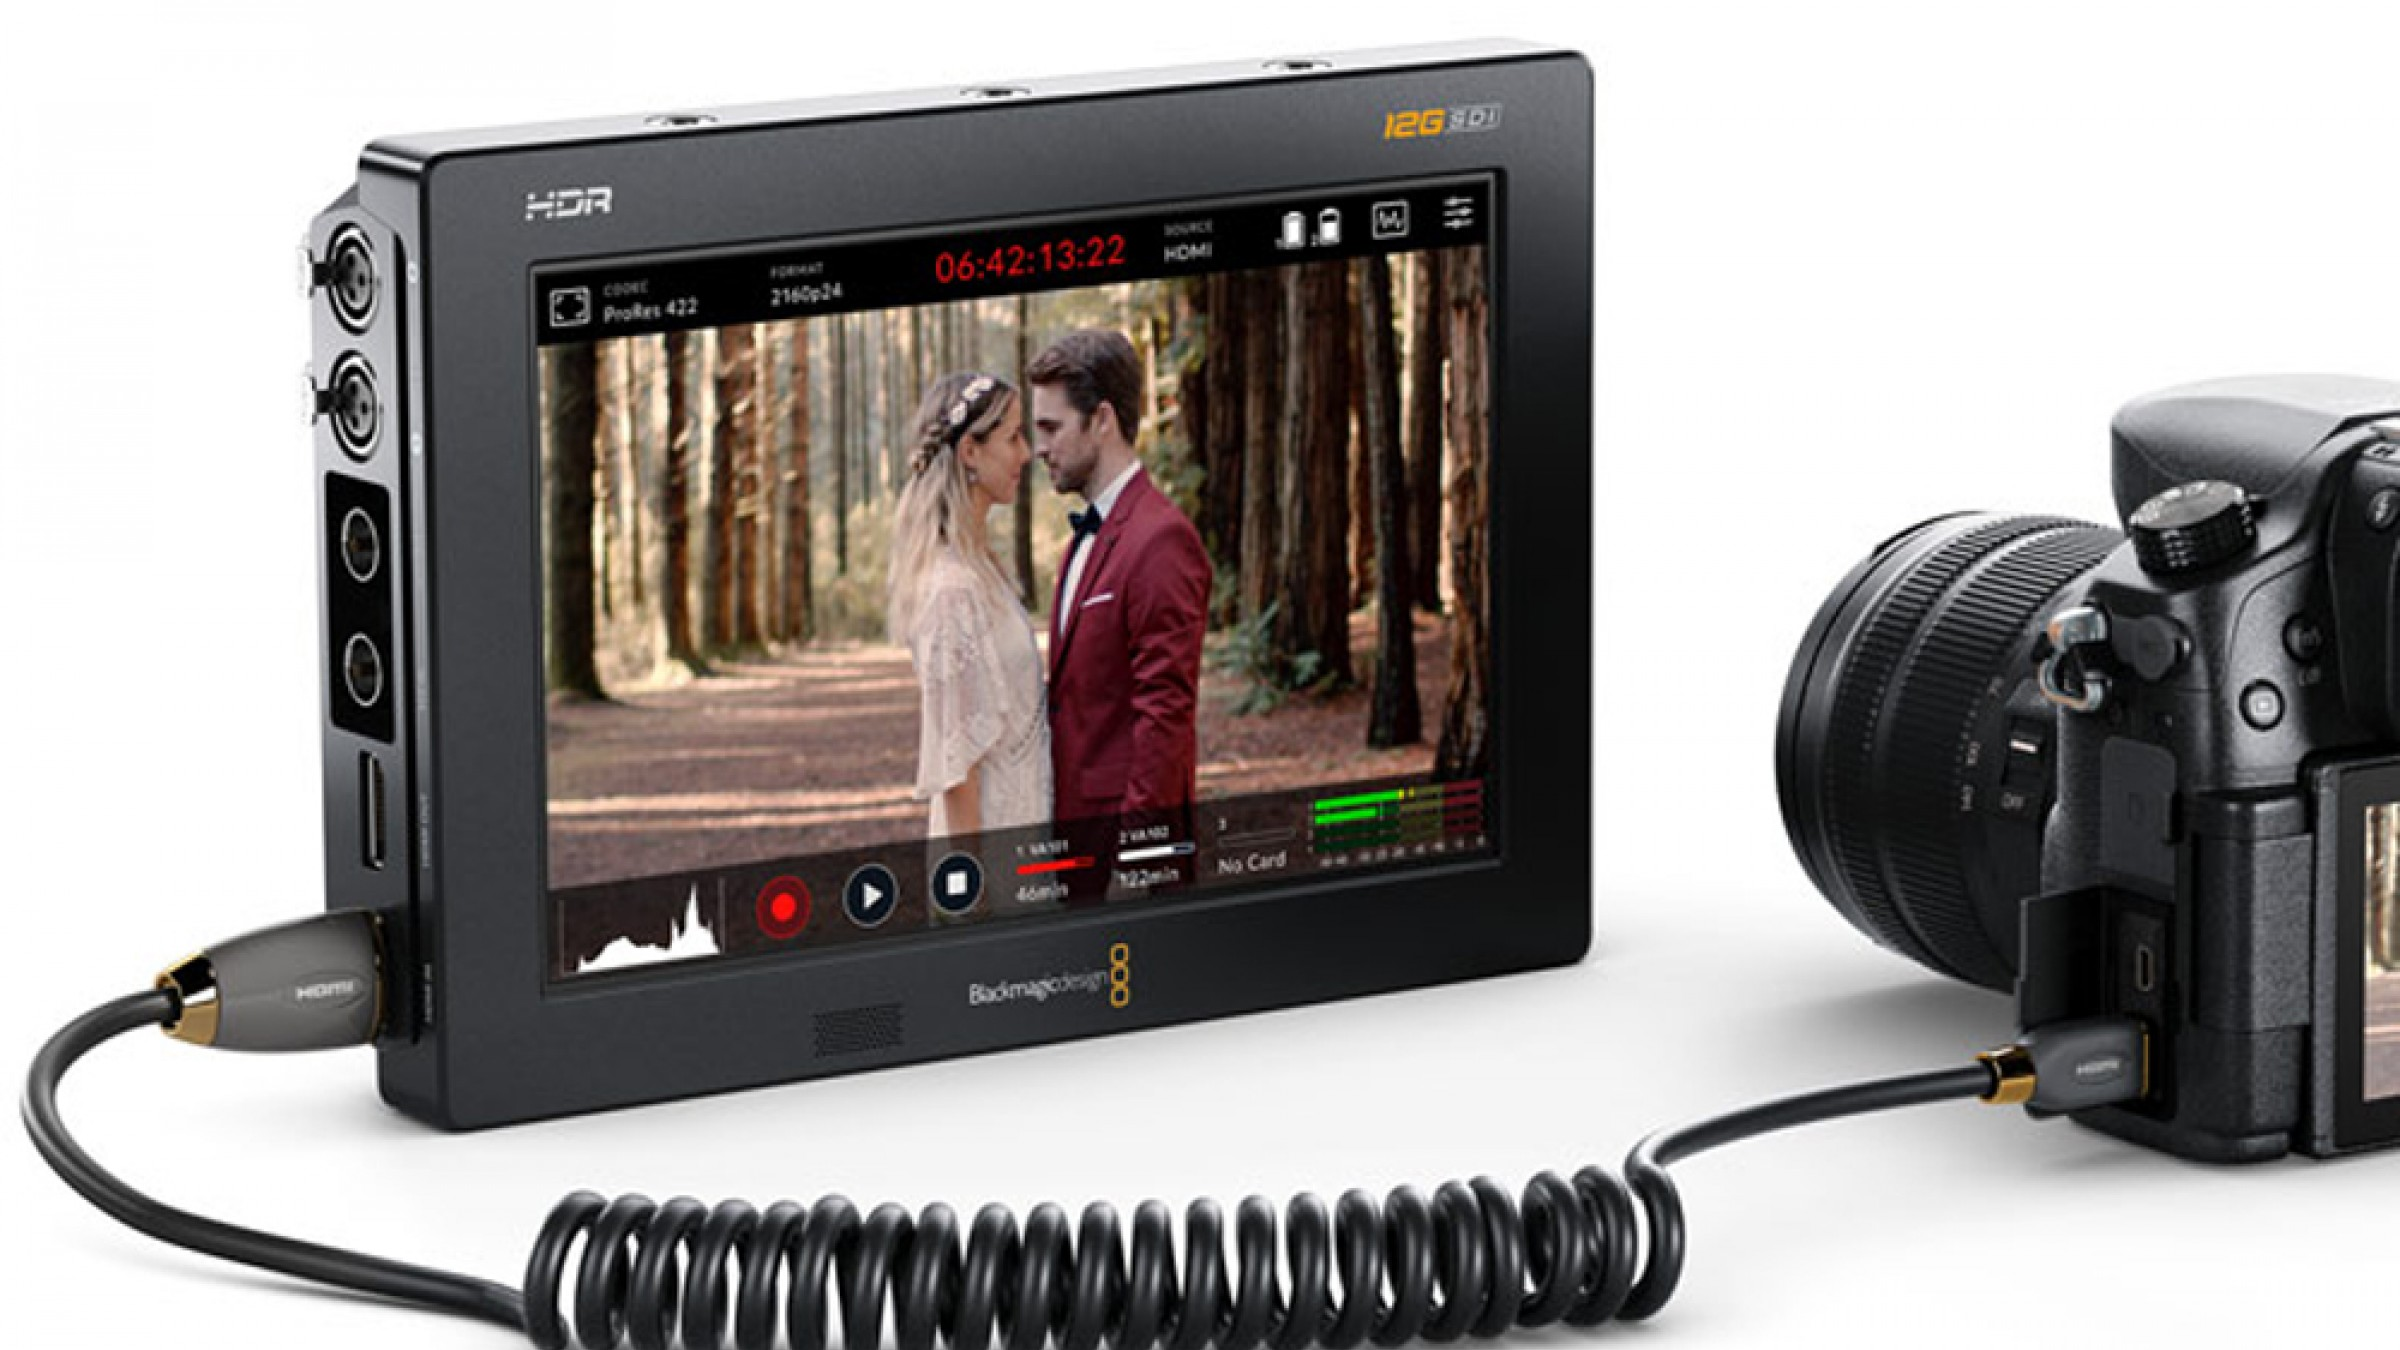 Blackmagic Improves Colorimetry in Video Assist 12G HDR Series with Firmware 3.03